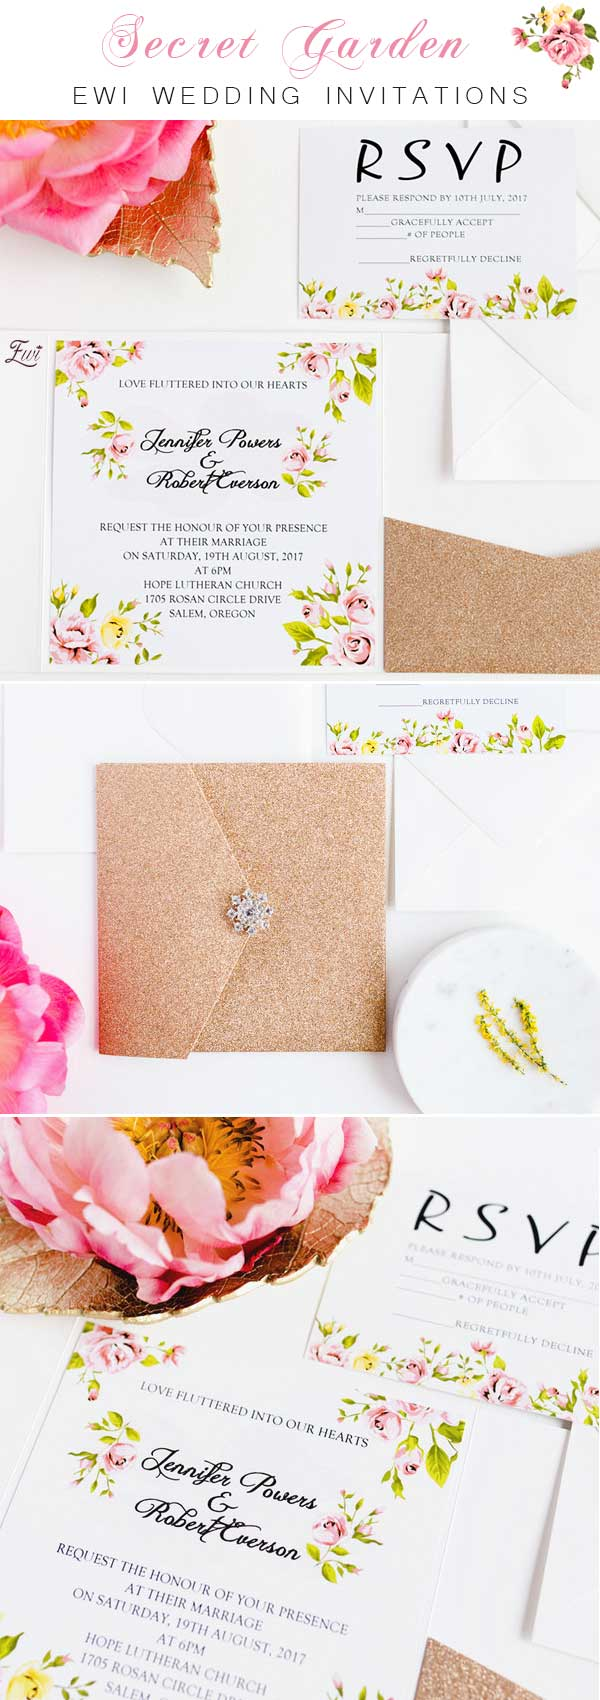 Gold Glitter Pocket with Rhinestone Closure and Floral Inspiration Wedding Invitation EWTS031